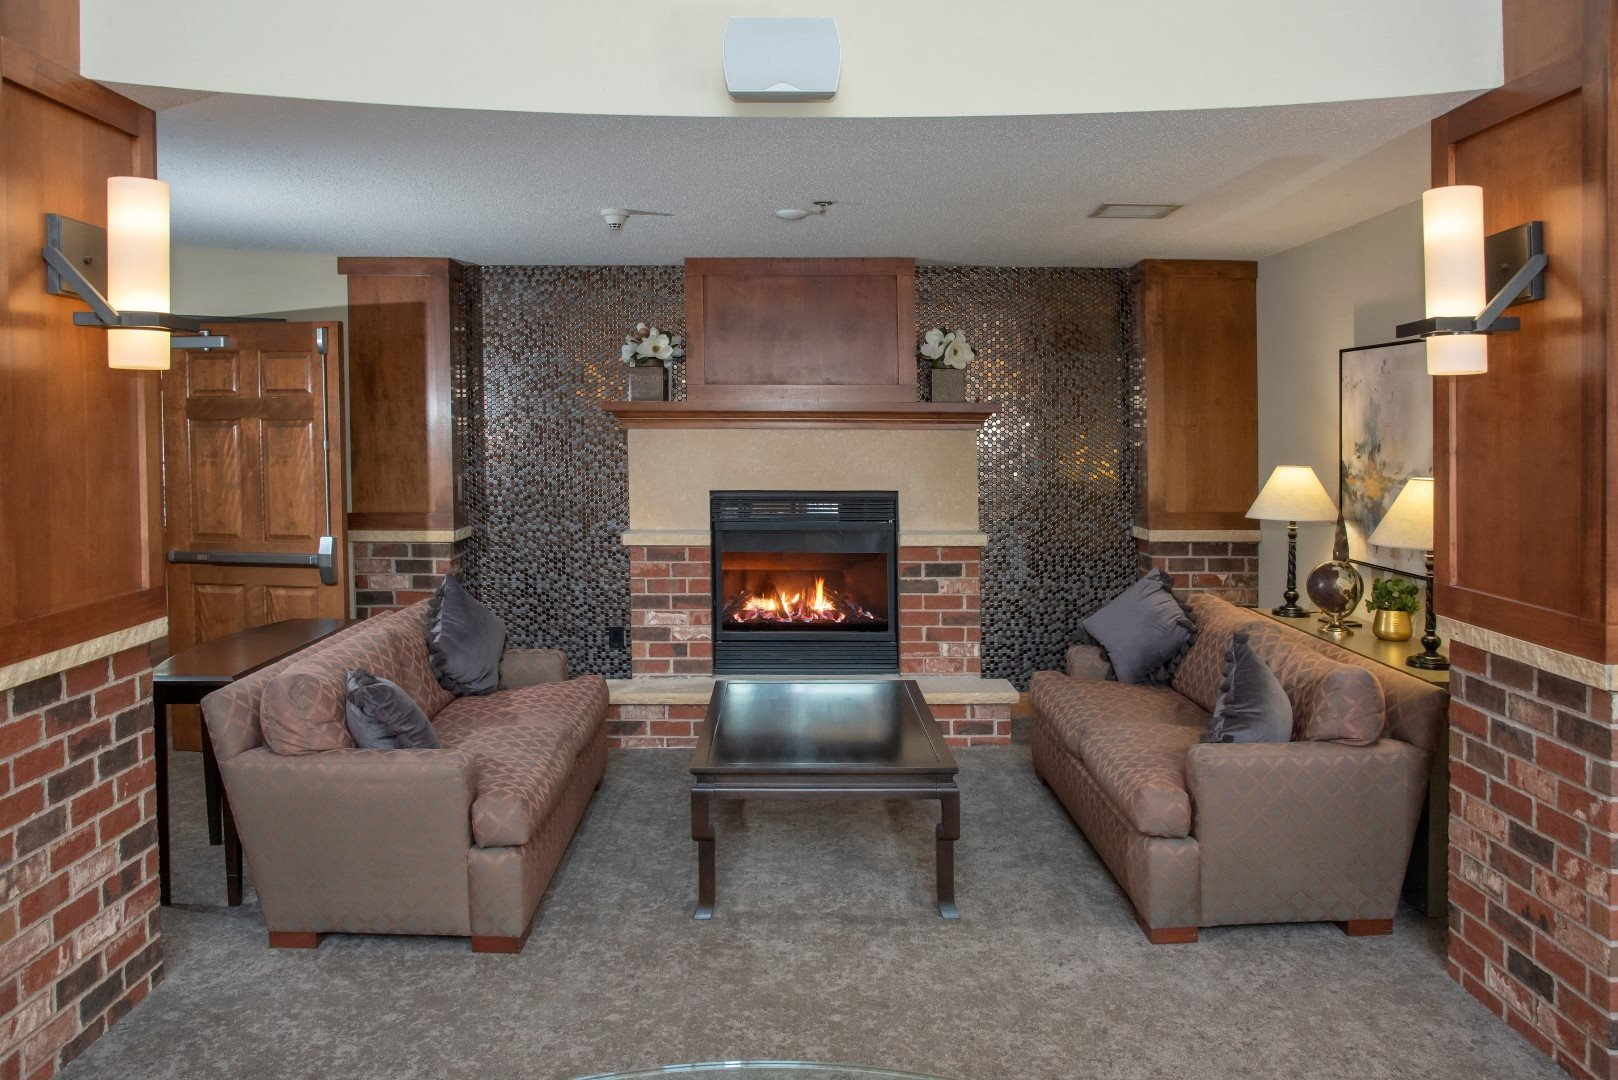 Lobby fireplace and seating area